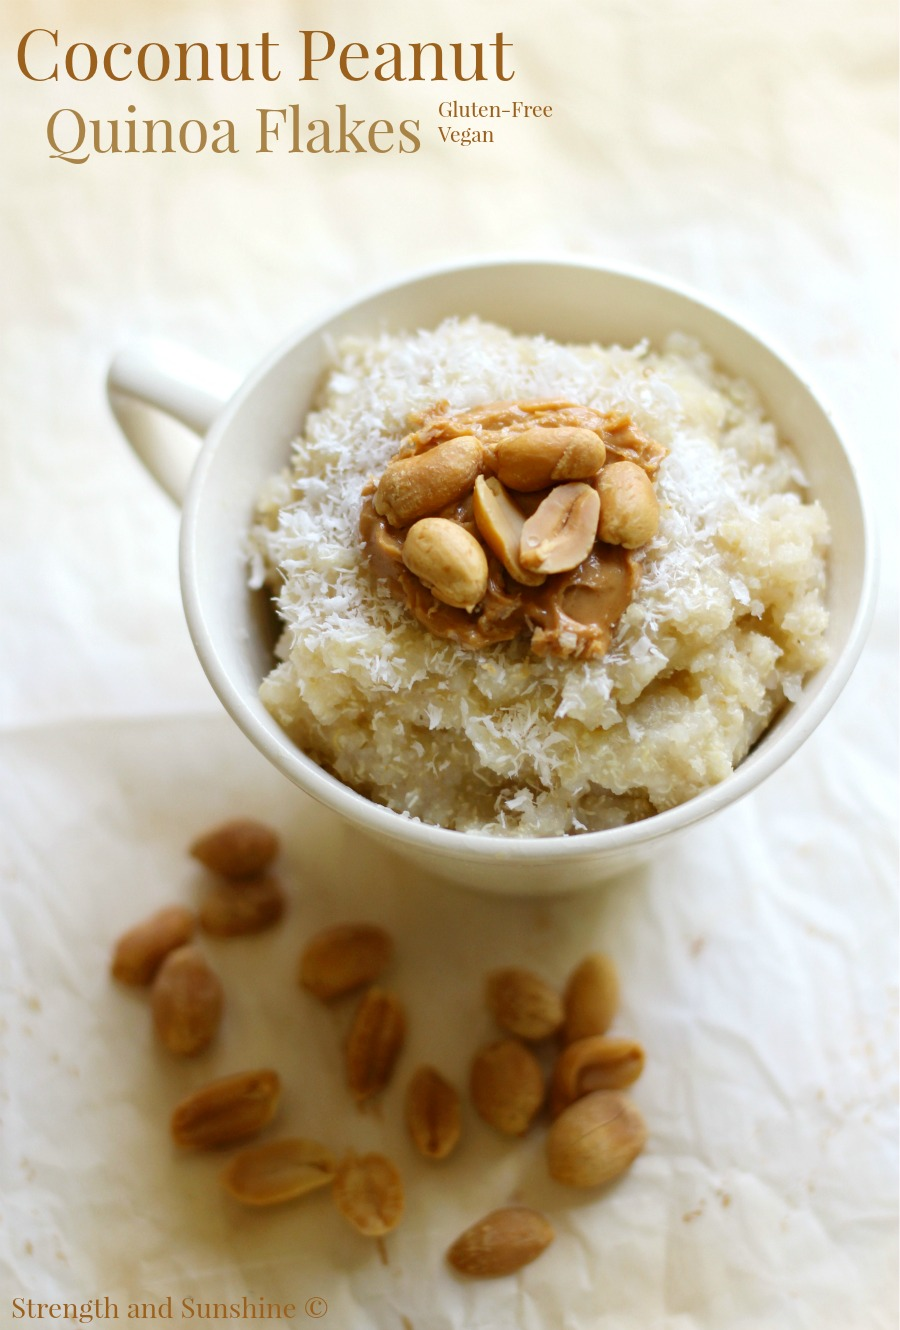 Coconut Peanut Quinoa Flakes | Strength and Sunshine @RebeccaGF666 A fun flavor combination for a quick & easy healthy breakfast recipe! Coconut Peanut Quinoa Flakes are gluten-free, vegan, and done in the microwave. A bowl of pure plant-based protein and healthy fats to fuel you all day long!